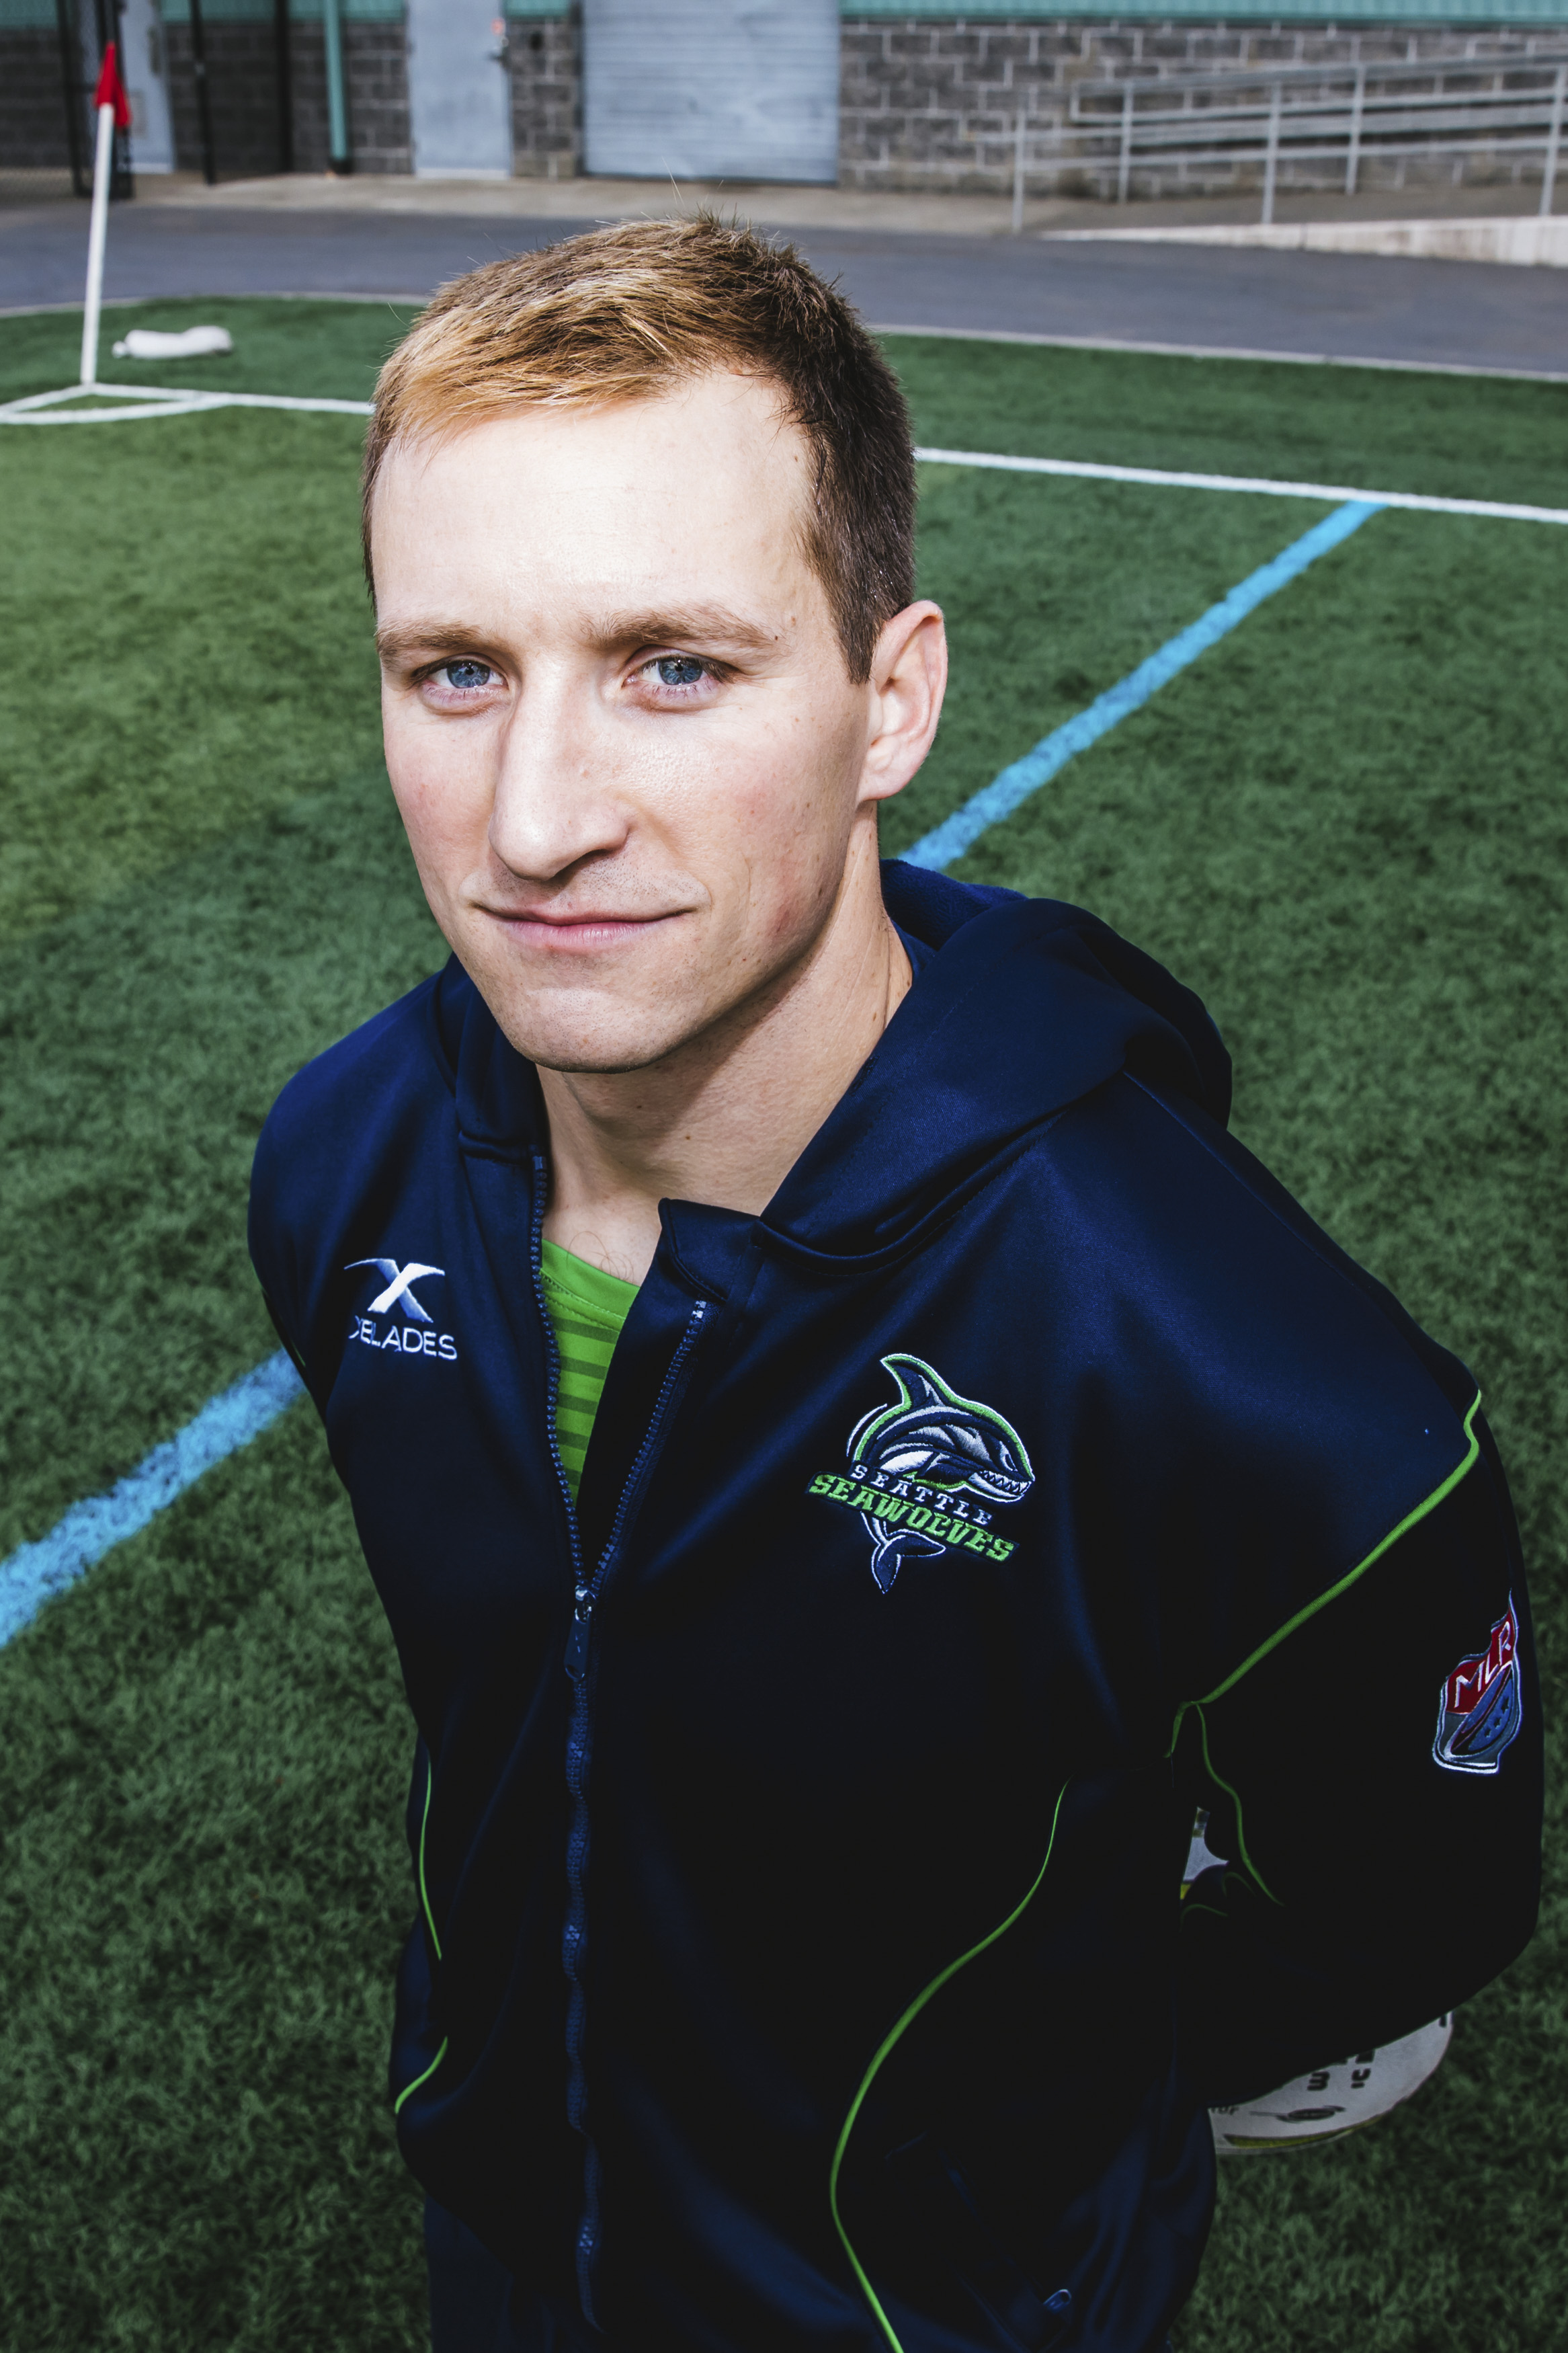 Hellllllo Peter! Peter plays Wing for the Seattle Seawolves and hails from Aurora, Illinois. The 28-year-old enjoys healthy snacks like Pop Tarts or Cosmic Brownies. (Image: Sunita Martini / Seattle Refined).